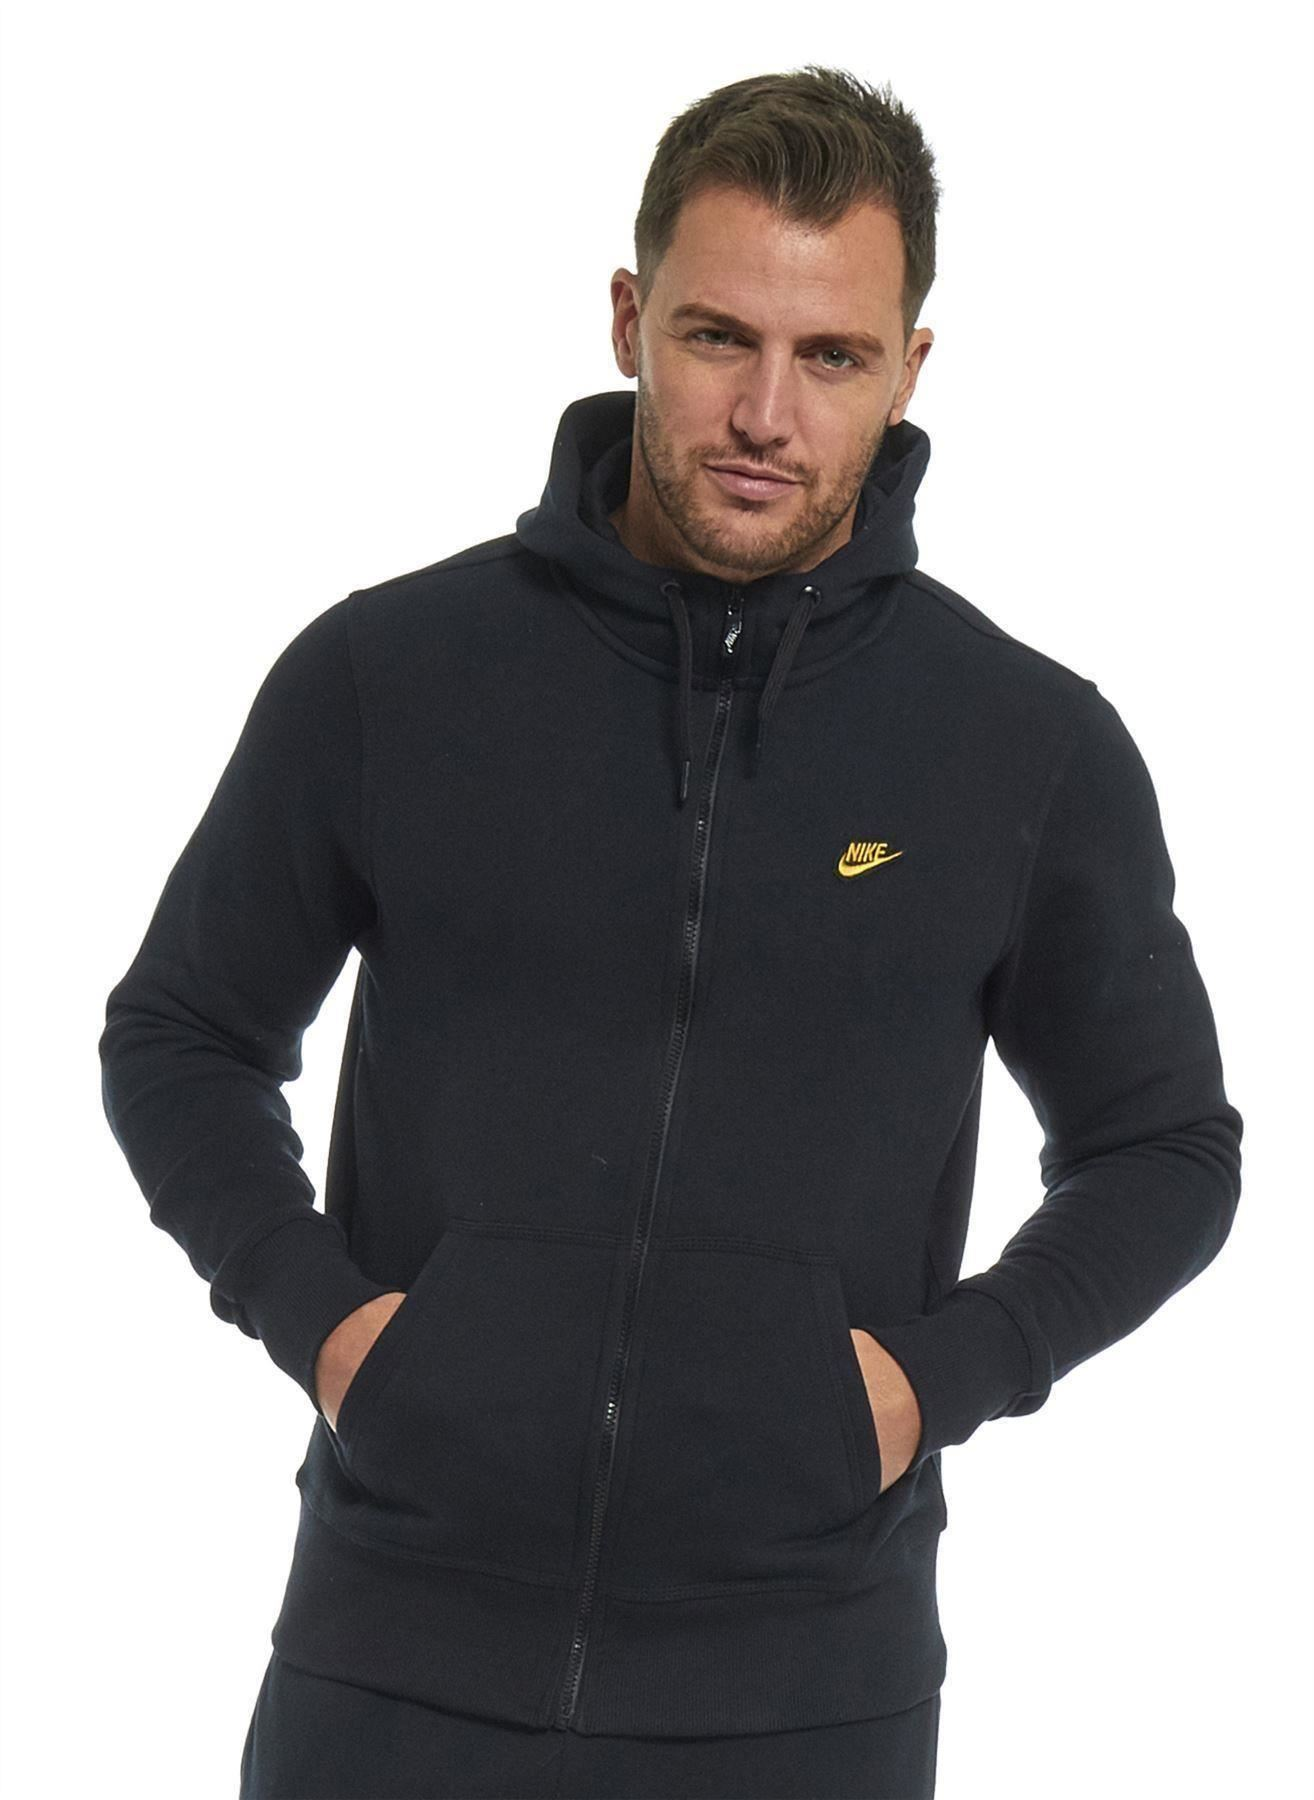 Men's Fleece (90) Stay focused no matter the temperature with the warmth provided by men's fleece clothing. Featuring signature Nike fabrics such as Dri-FIT technology, the men's fleece collection is designed to help you approach all conditions with confidence while giving you the lightweight freedom to move and compete at your highest levels.